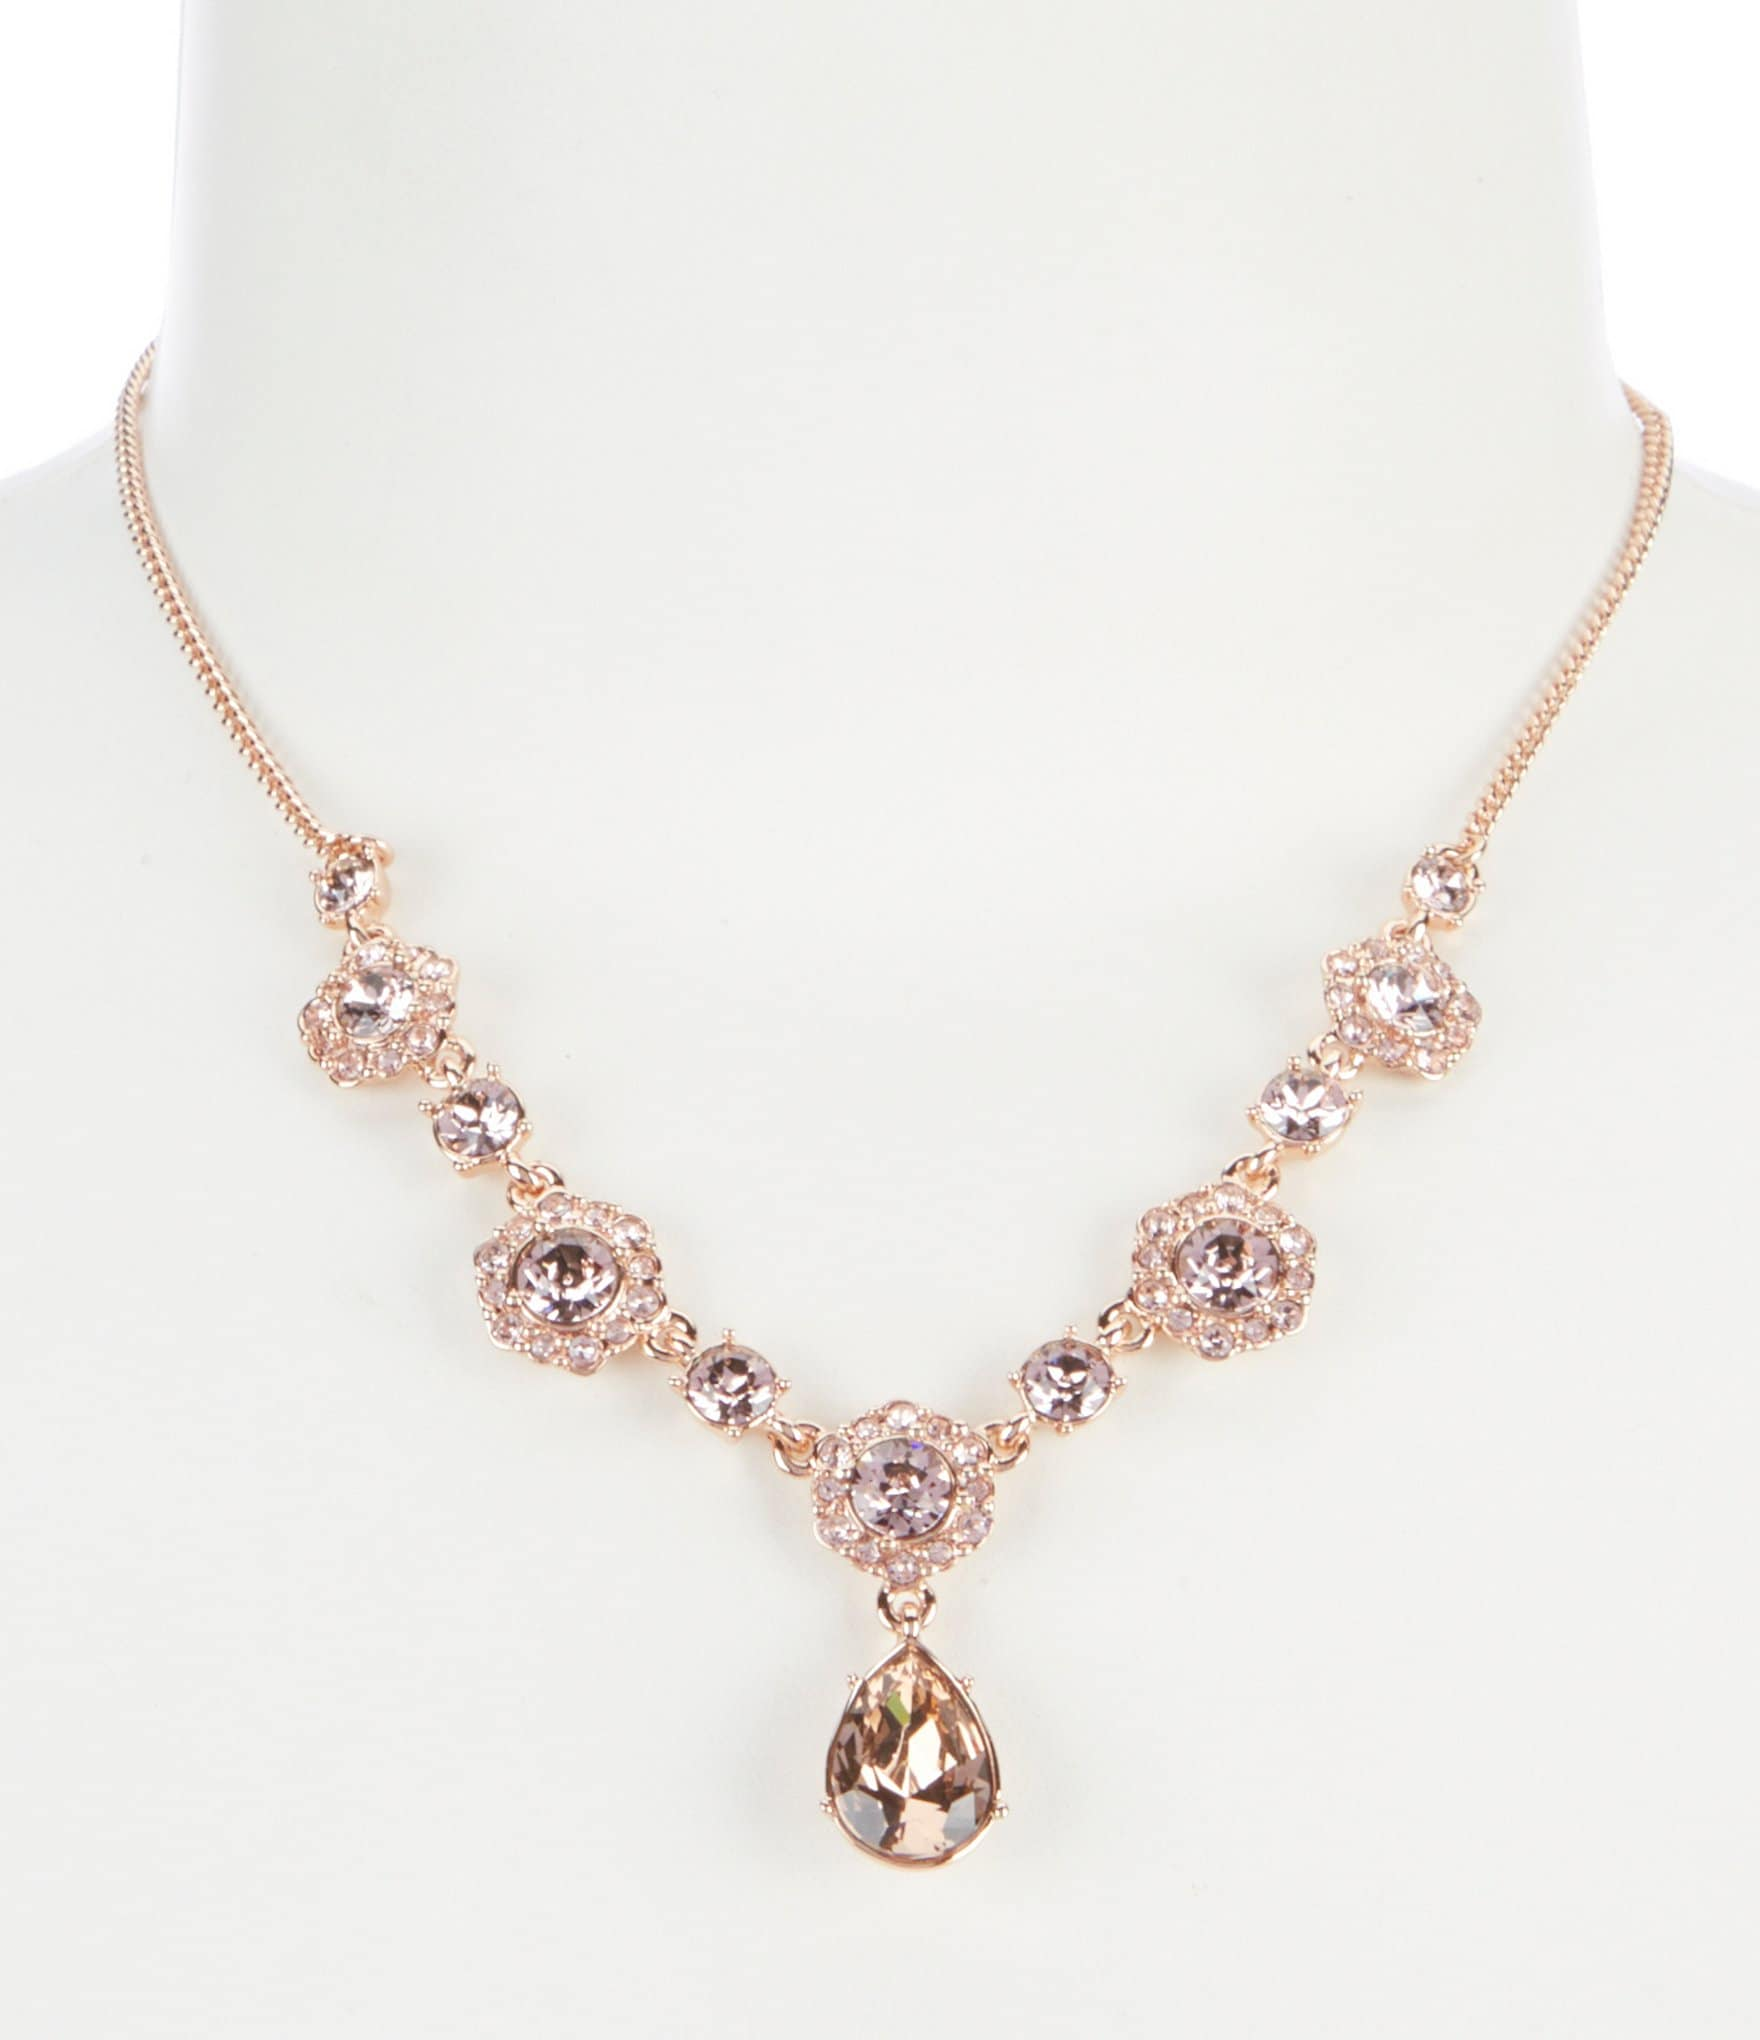 rose gold Womens Jewelry Dillardscom